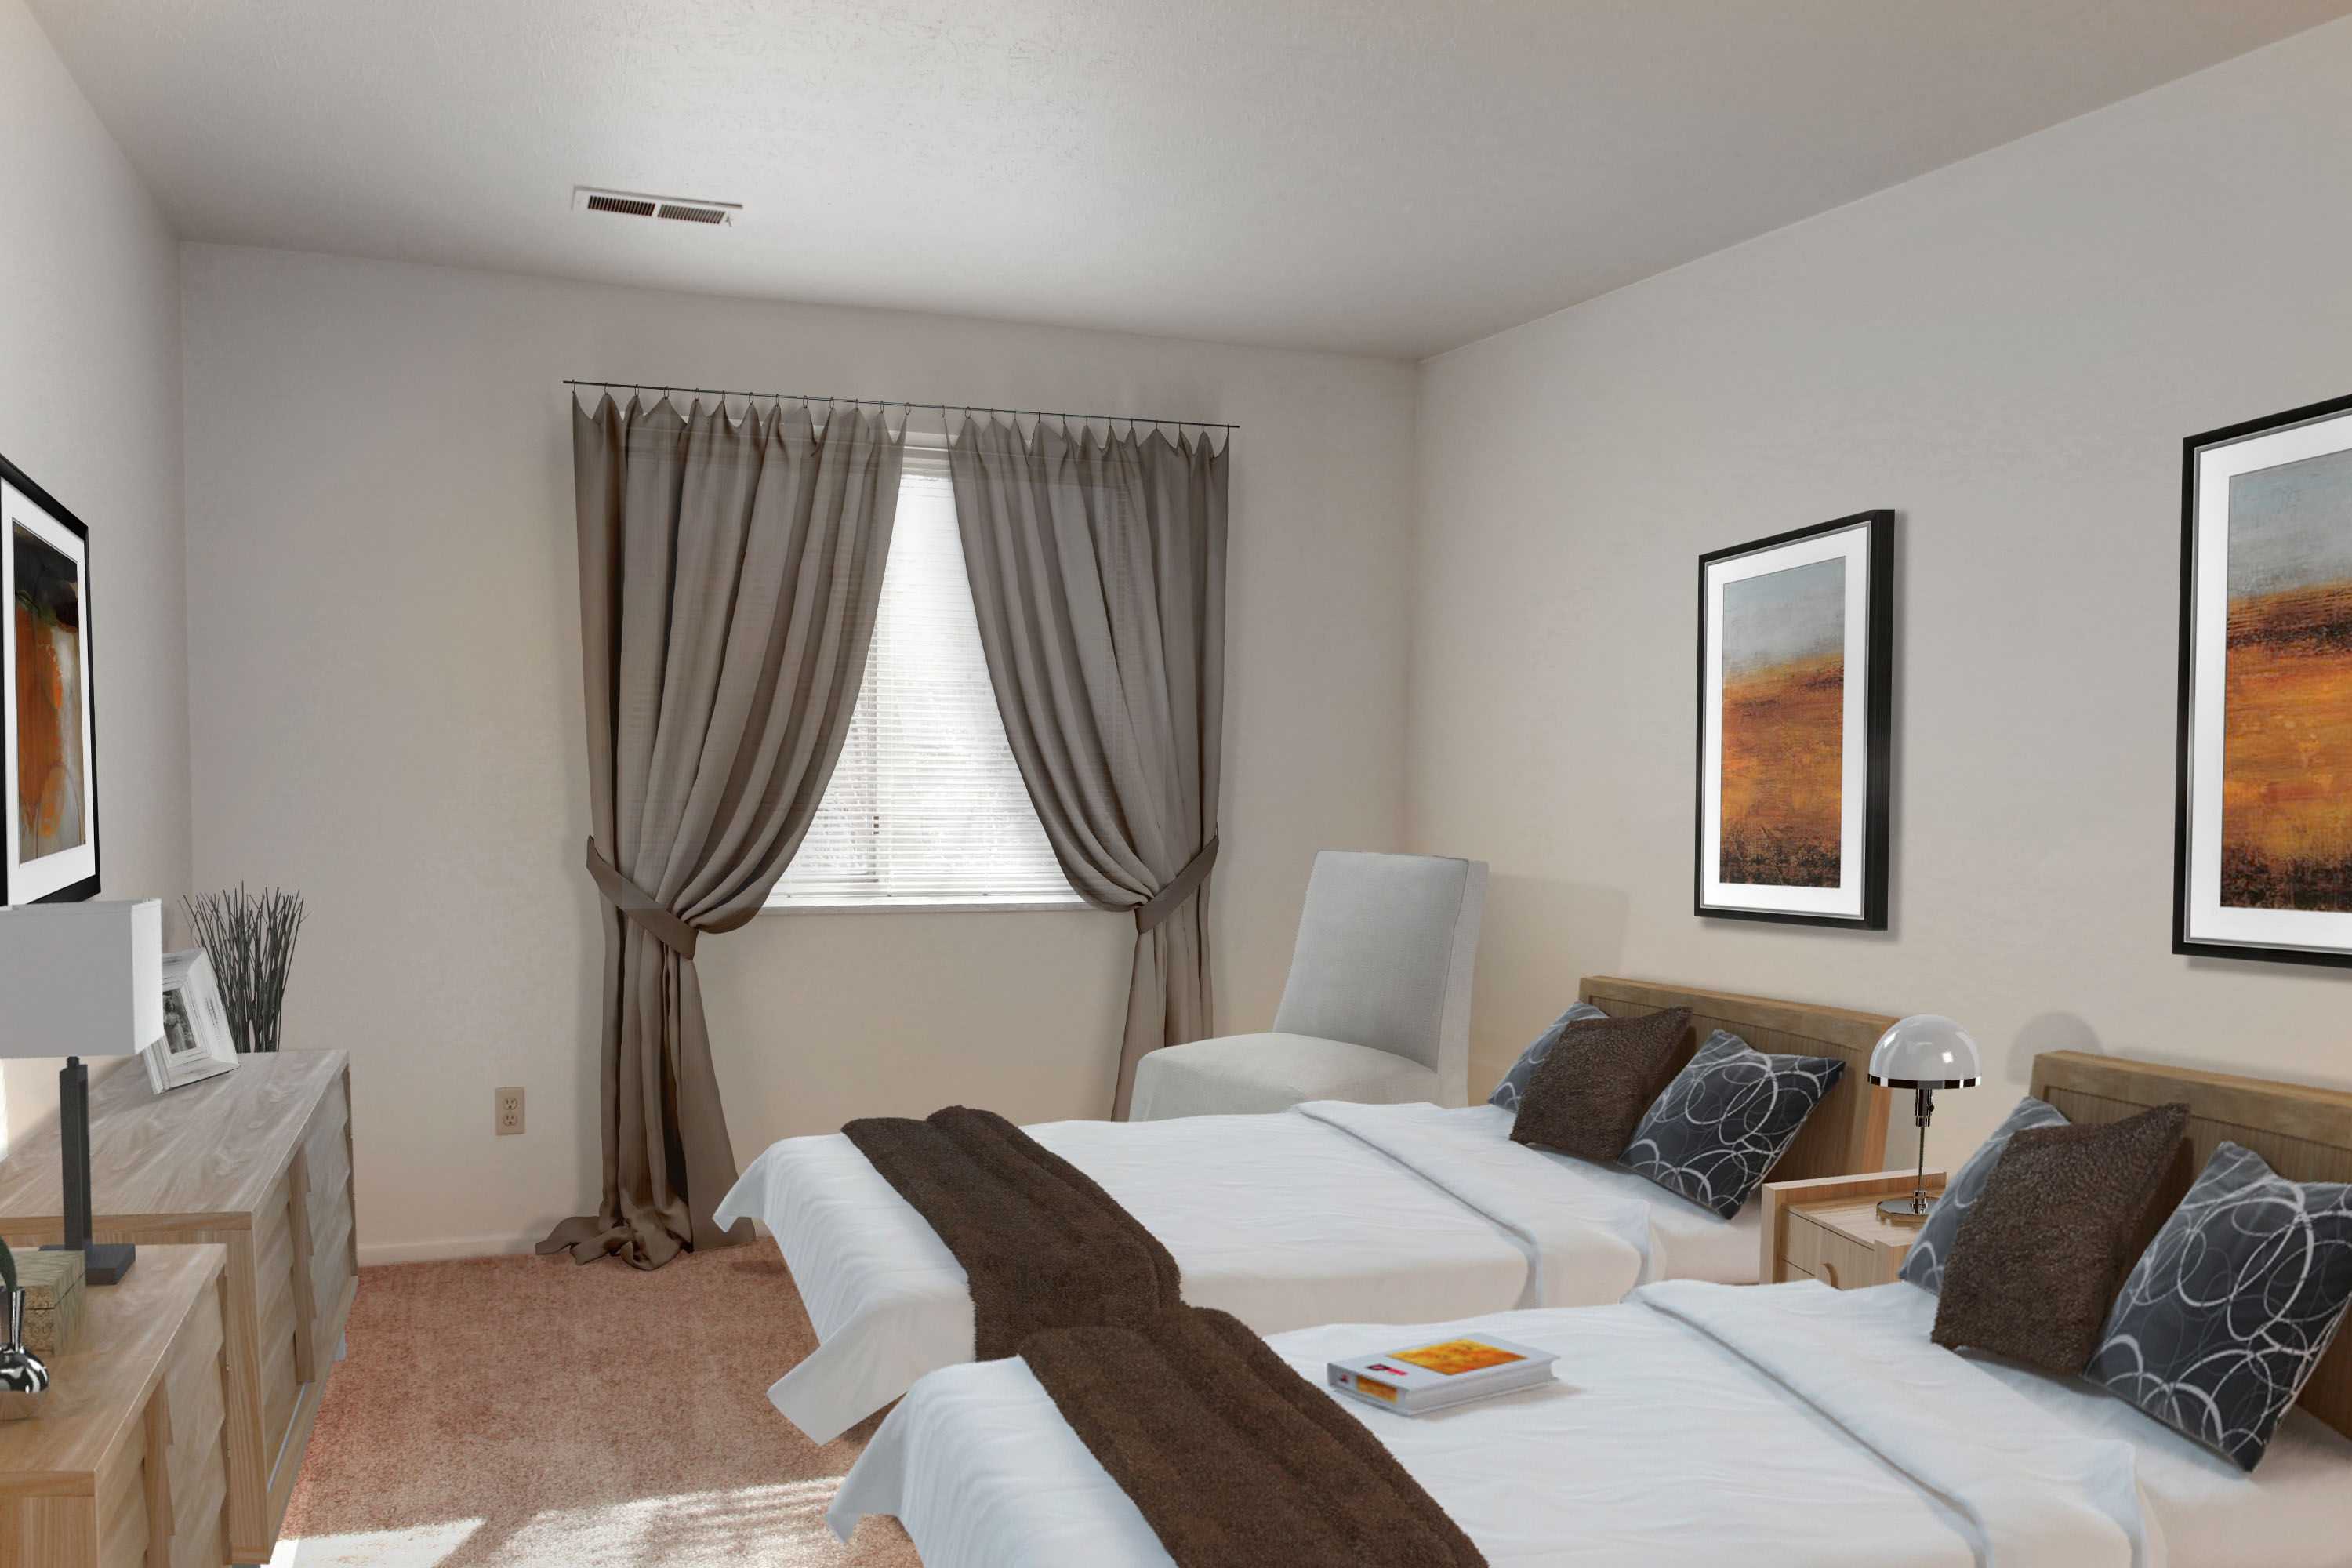 2D Bedroom #2 Furnished at the Greenridge on Euclid Apartments in Euclid, OH